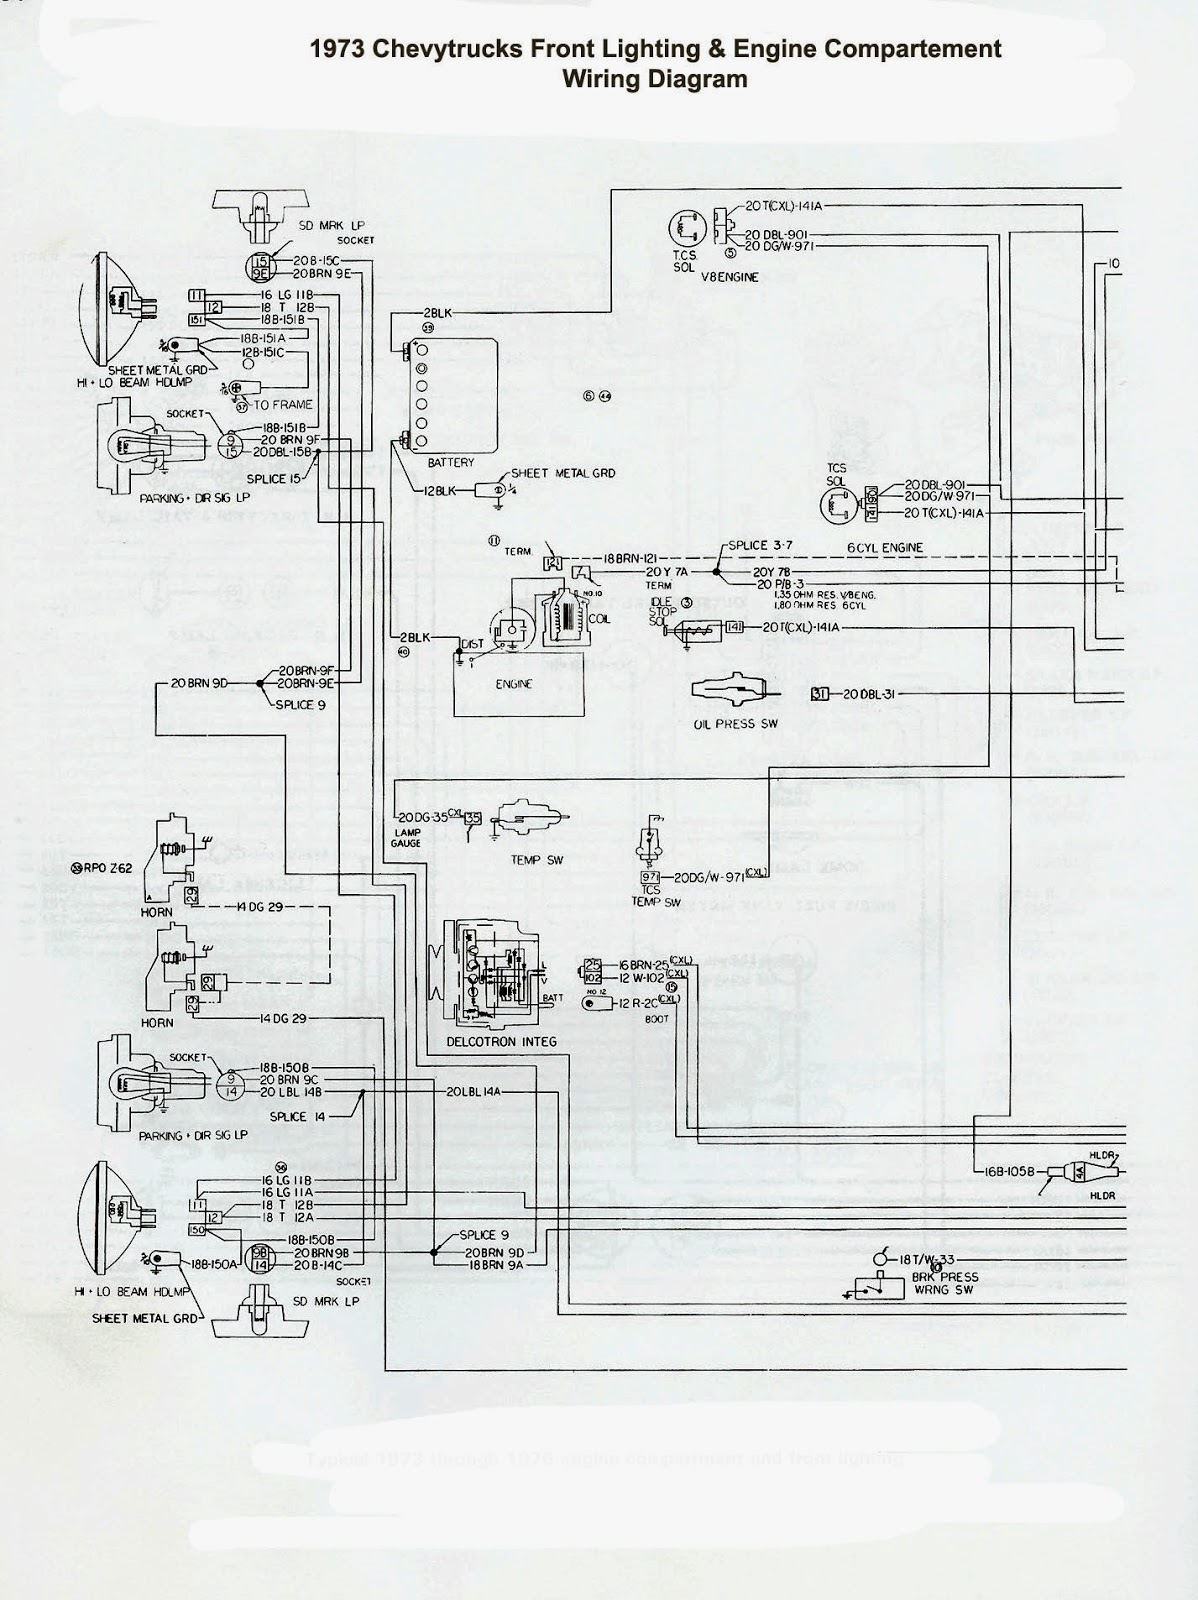 Electrical Winding Wiring Diagrams. 1978 Chevy Trucks Front Lighting Engine Partement Wiring Diagram. Wiring. 76 Camaro Wiring Diagram At Scoala.co